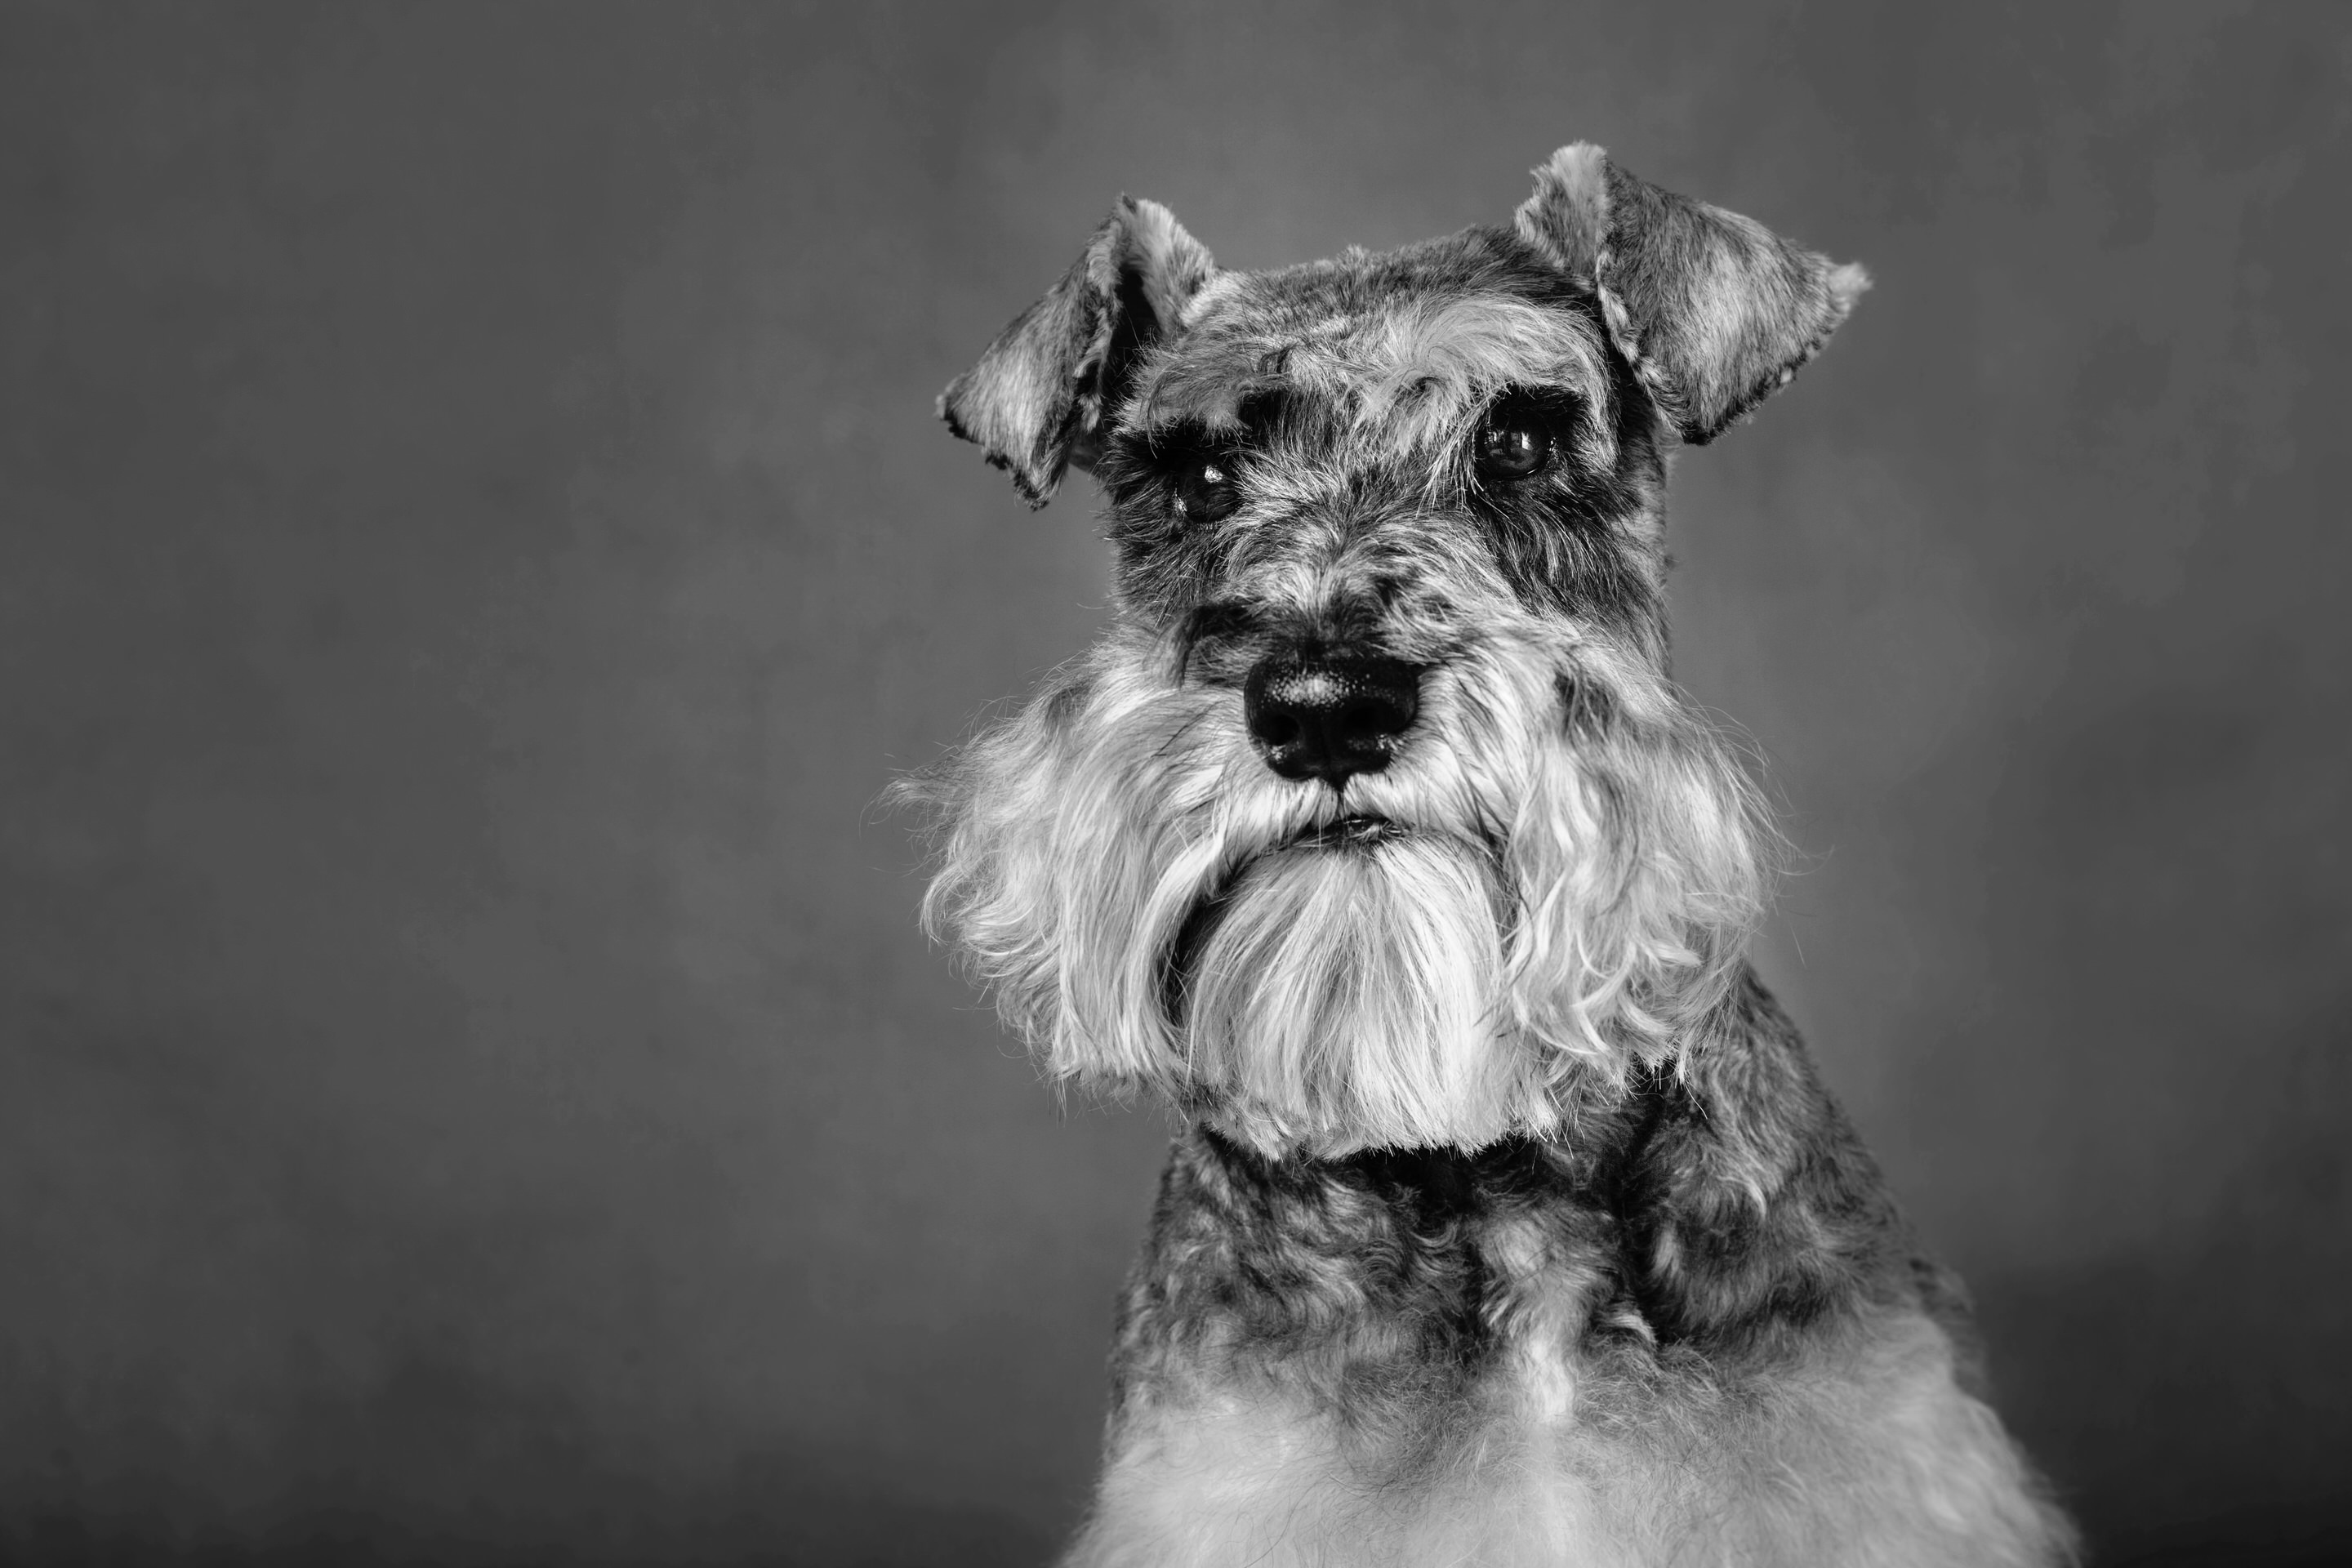 Dexter the Miniature Schnauzer